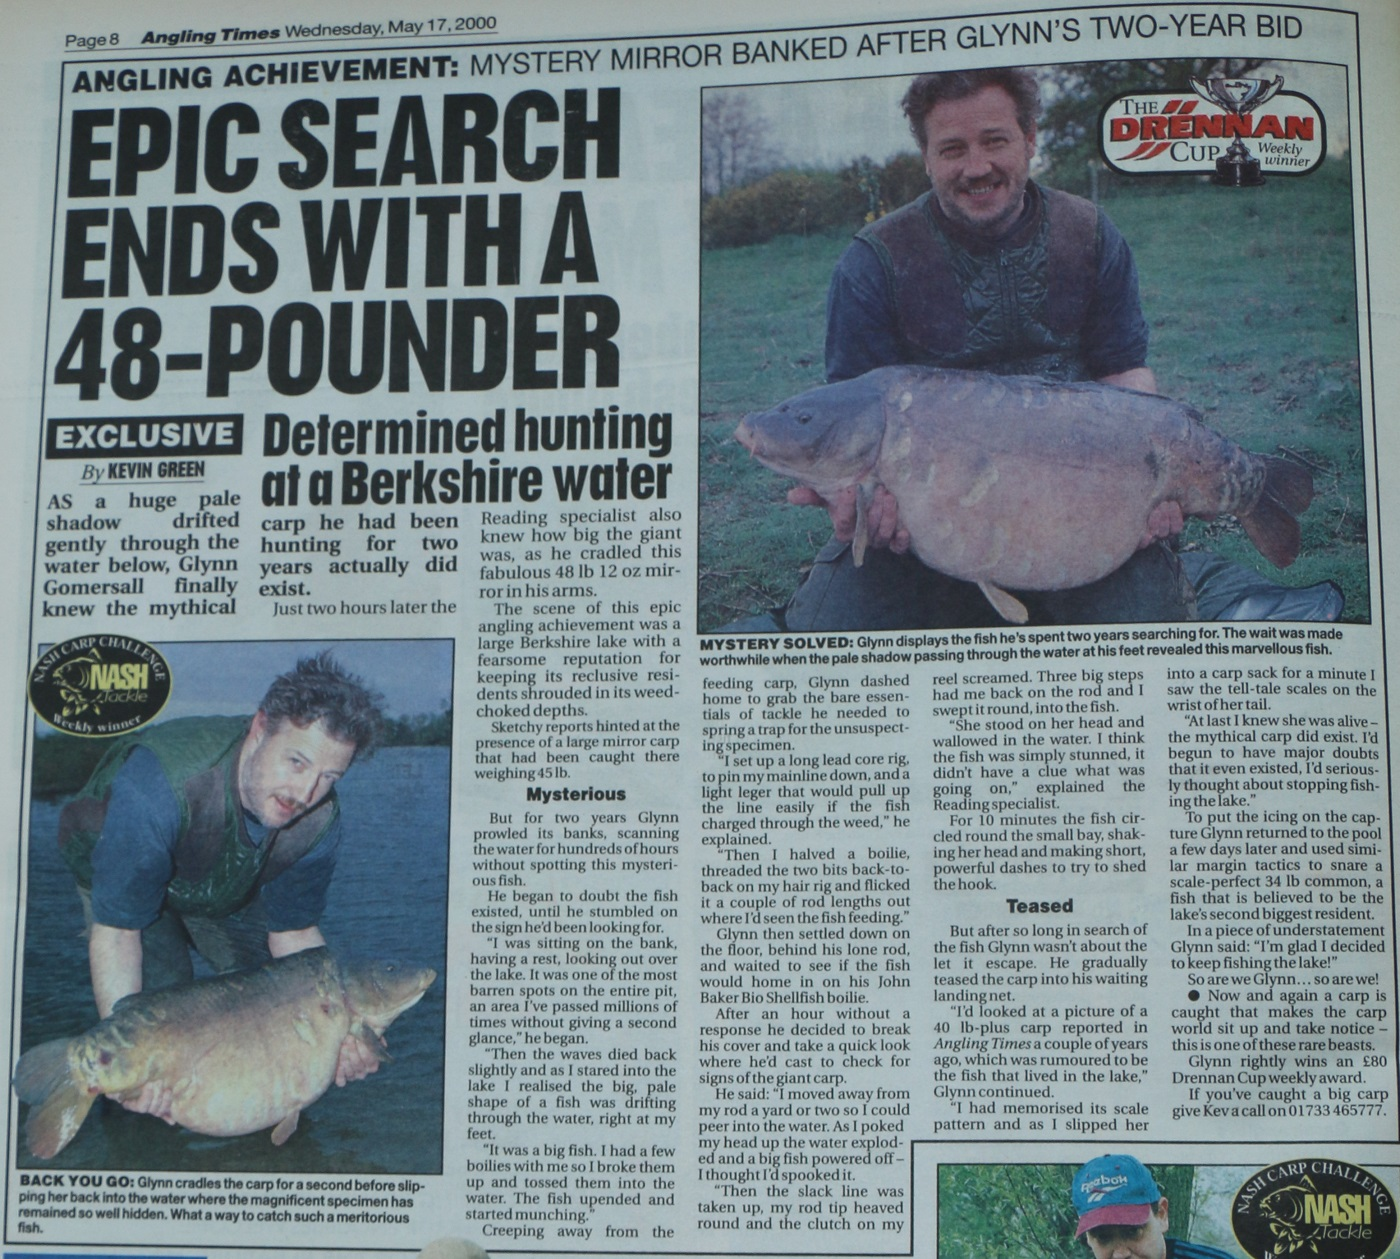 How the news was reported in Angling Times in 2000